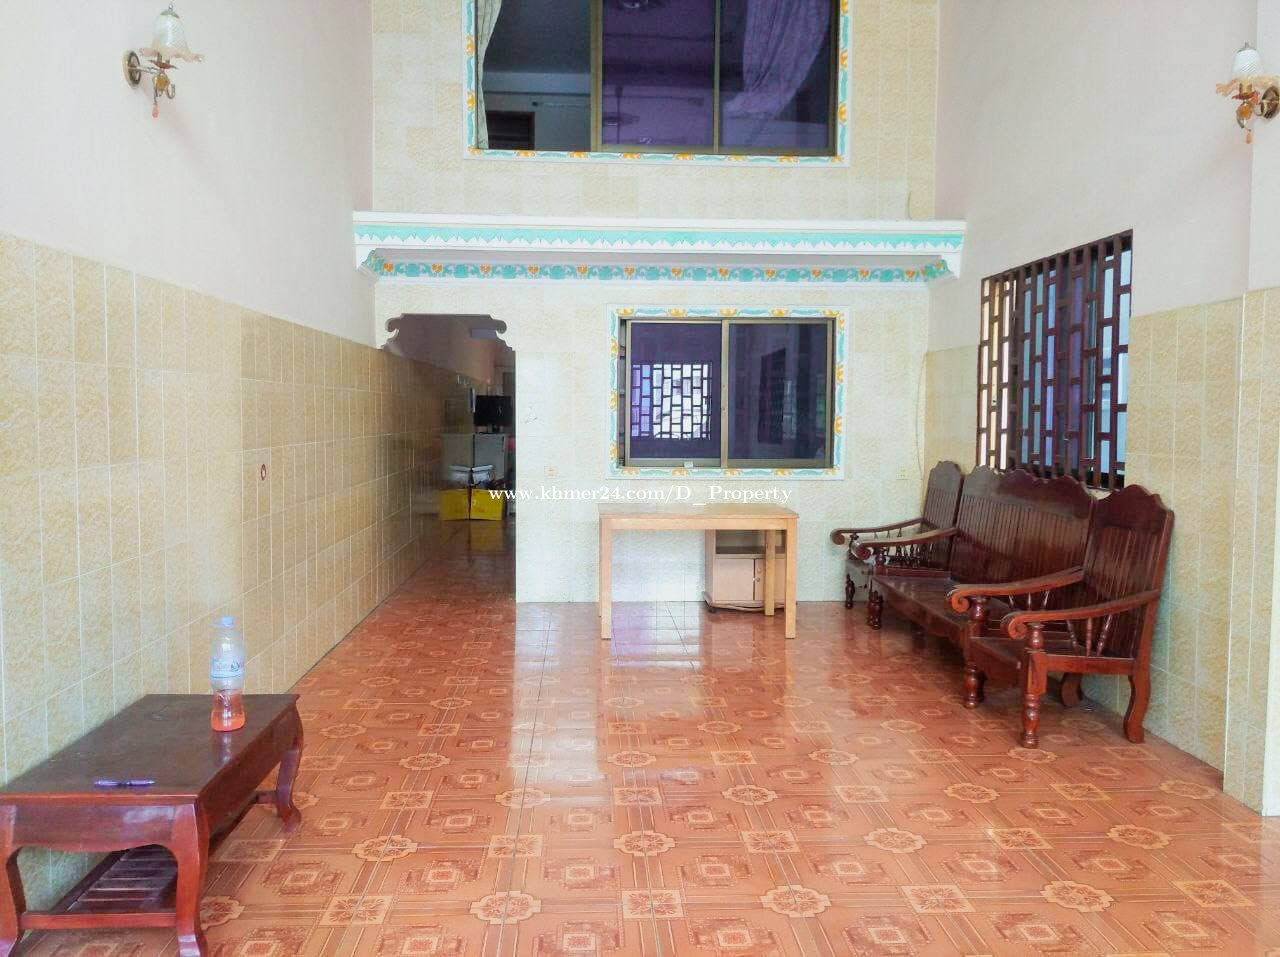 Apartment for Rent (1Bedroom; Boeung Tompon area)